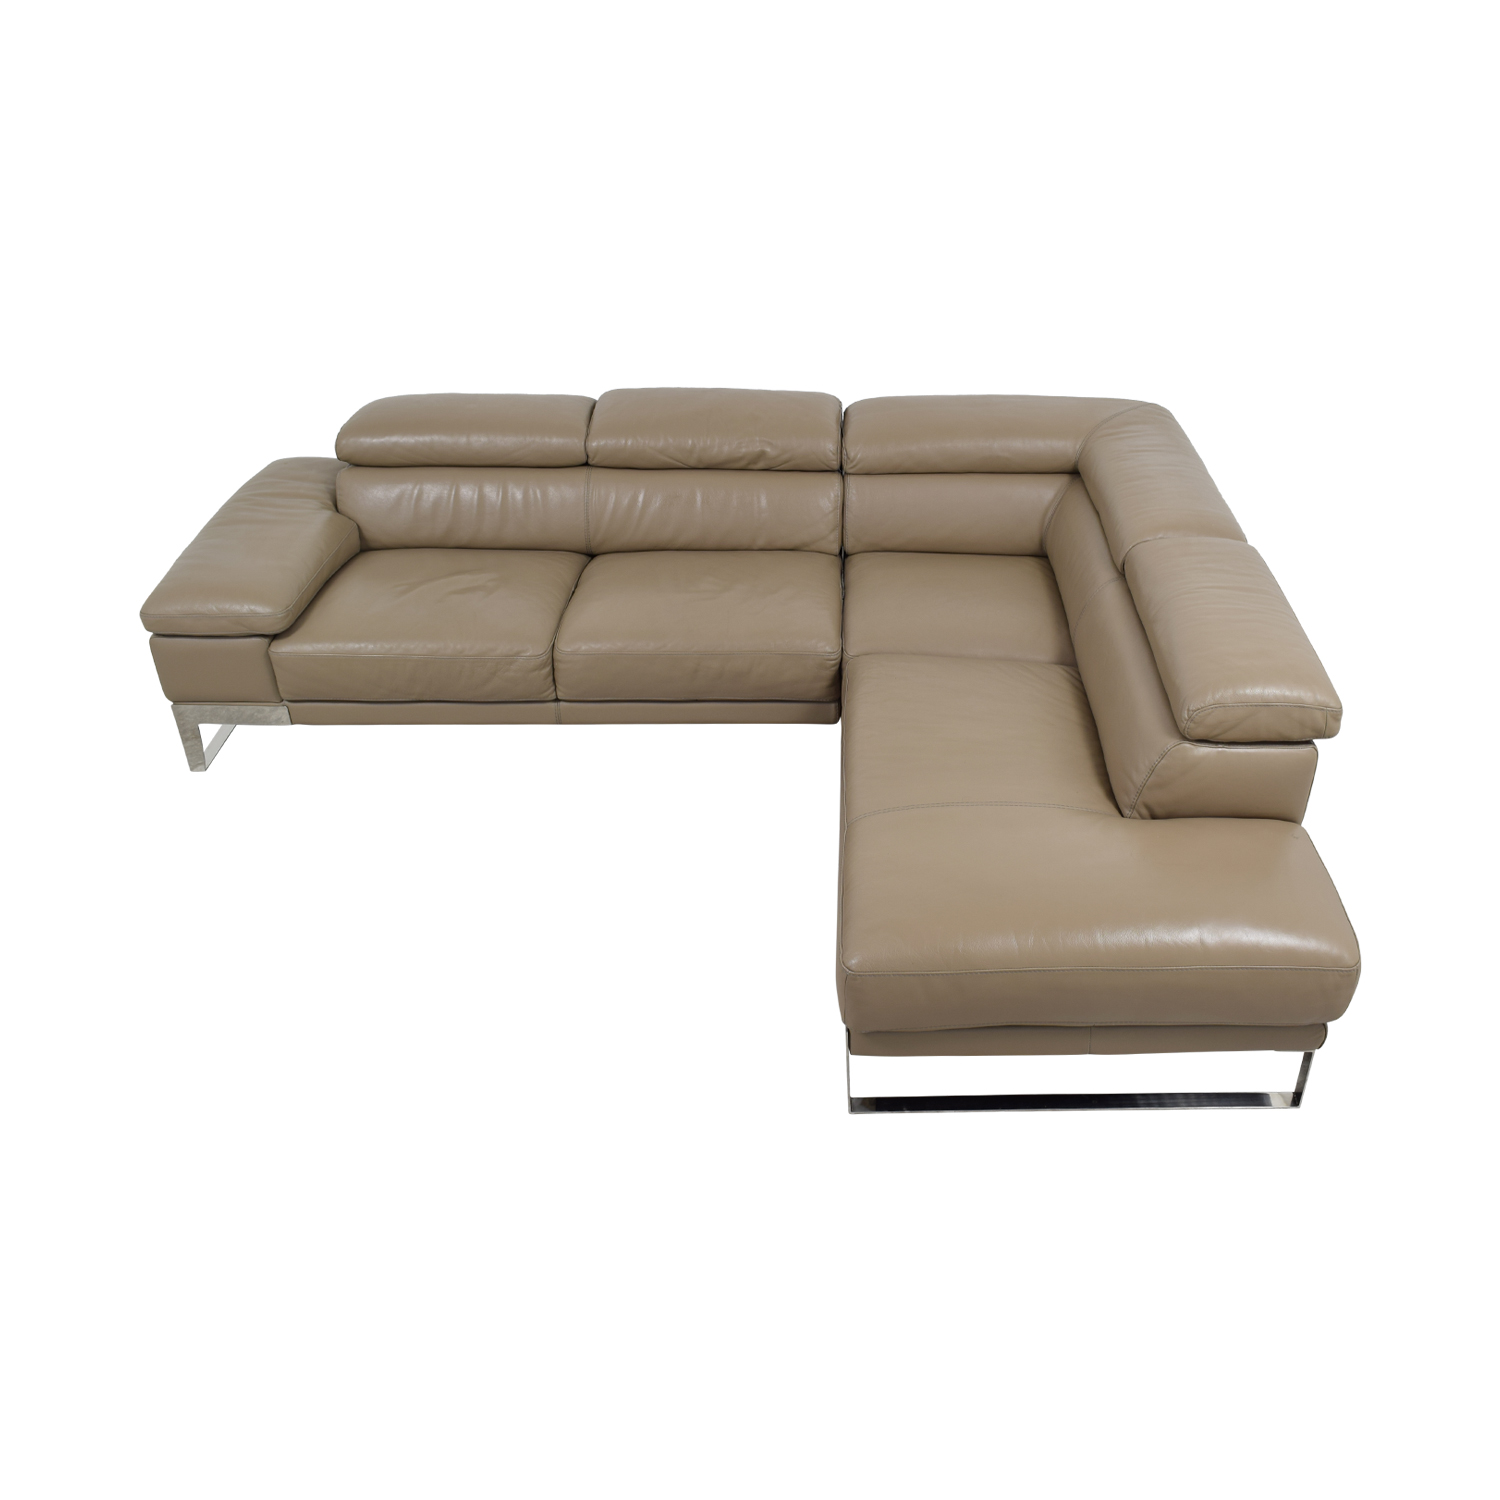 Jensen & Lewis Tan Leather L-Shaped Sectional Jensen & Lewis